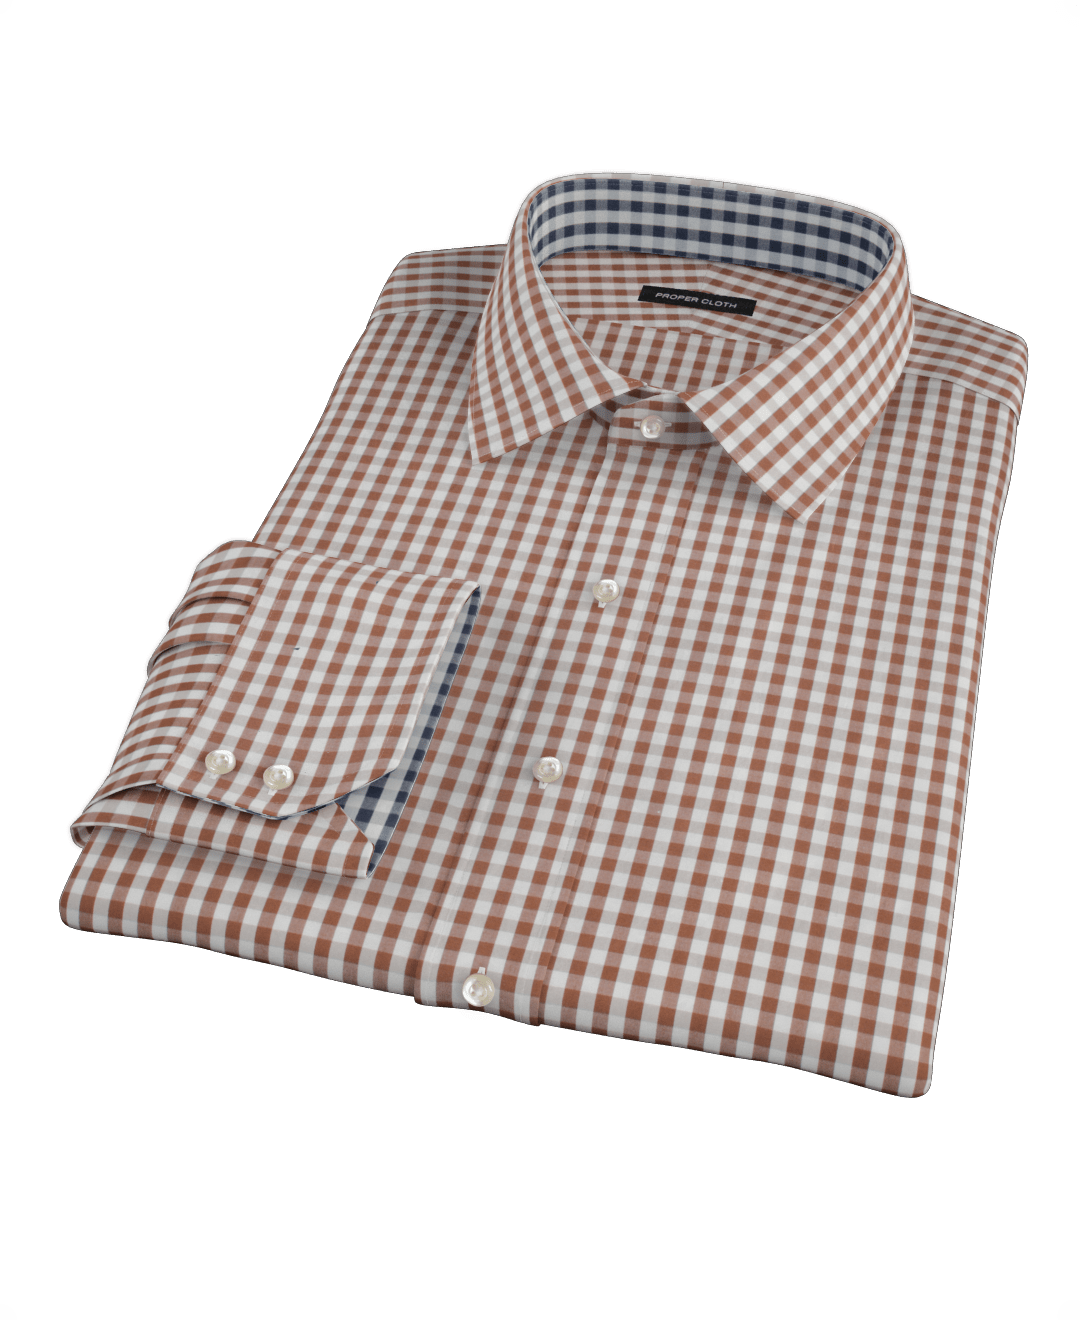 Big W Business Shirts Clove Brown Gingham Fitted Dress Shirt By Proper Cloth